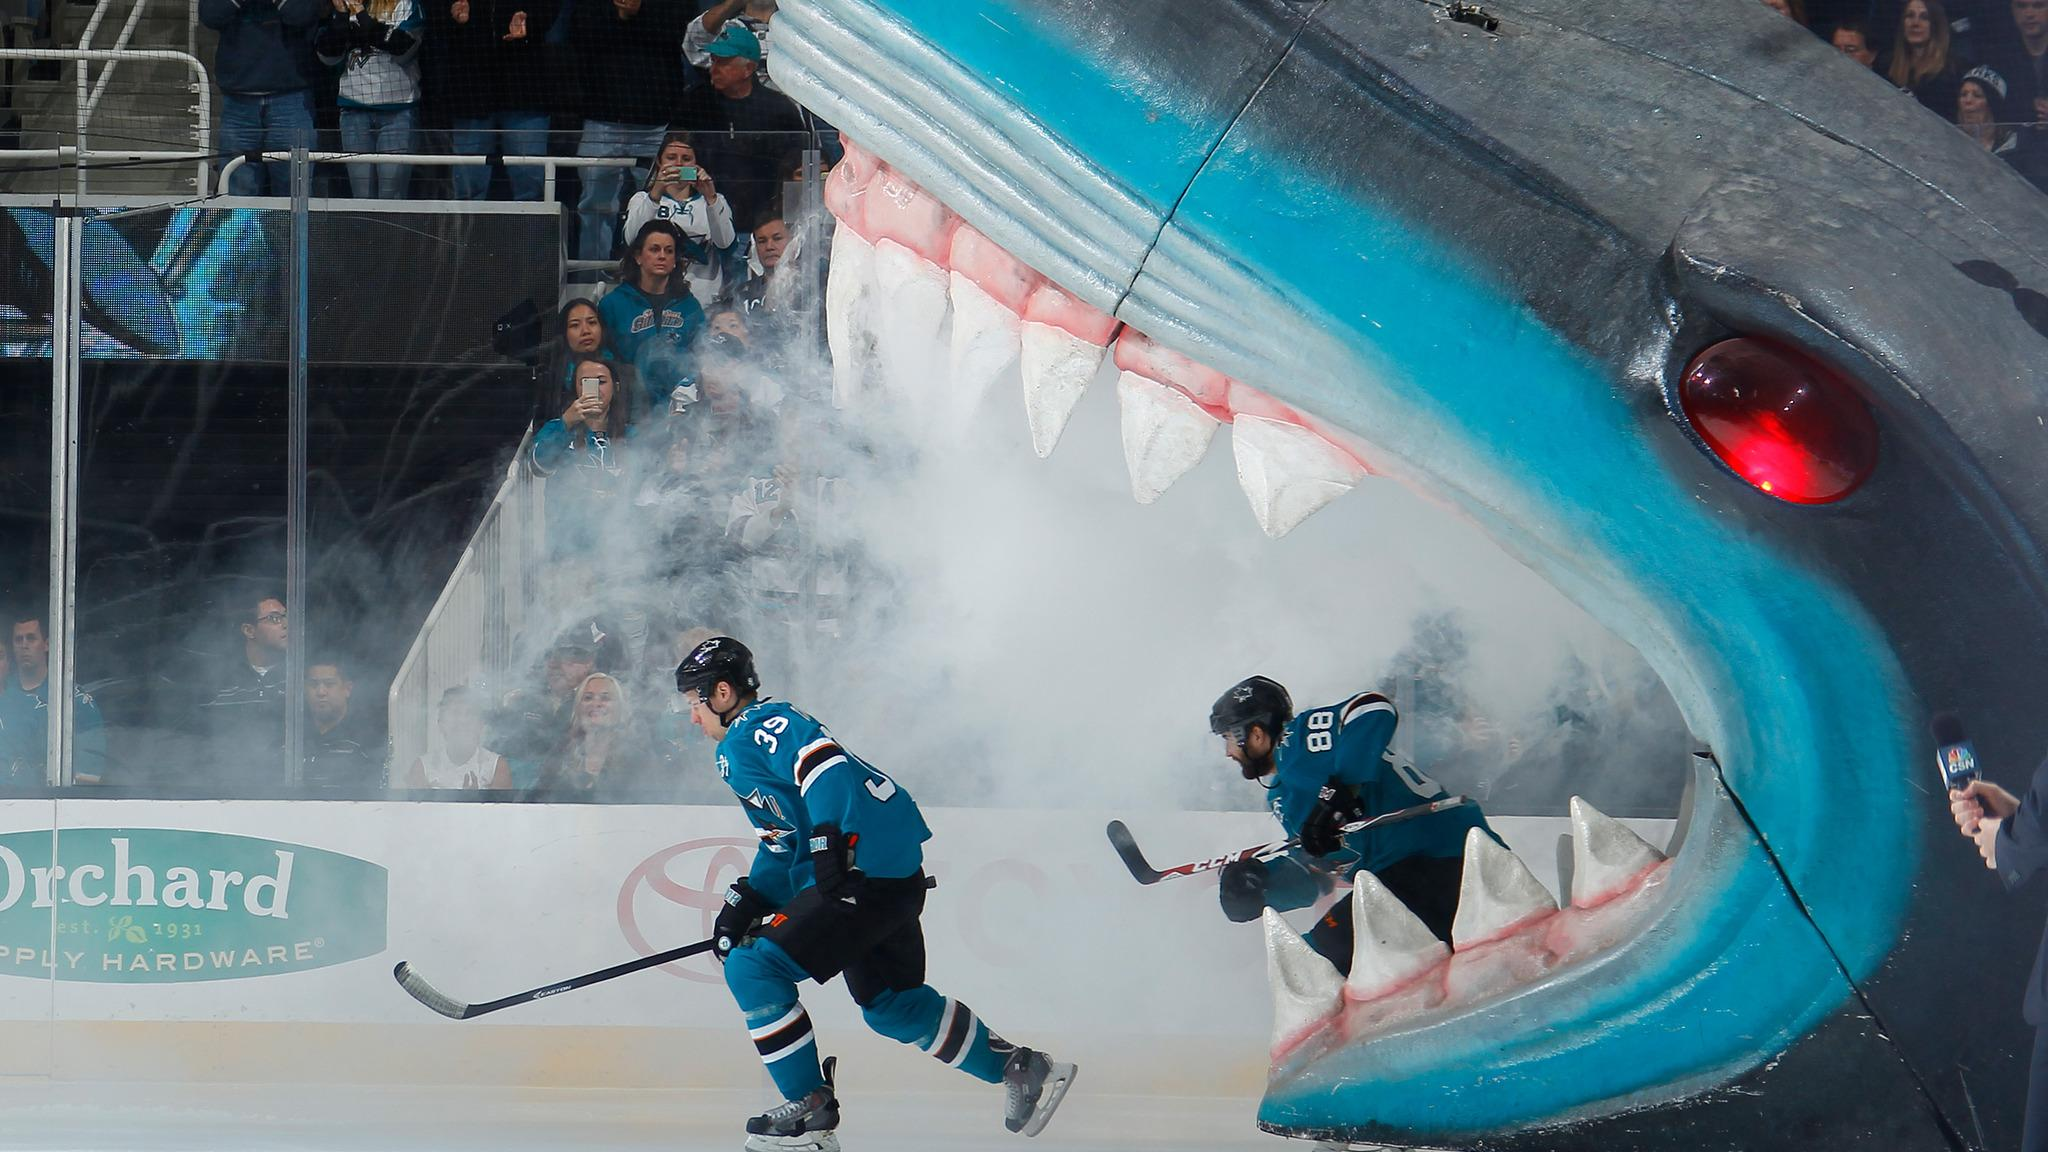 San Jose Sharks vs. Minnesota Wild at SAP Center at San Jose - San Jose, CA 95113